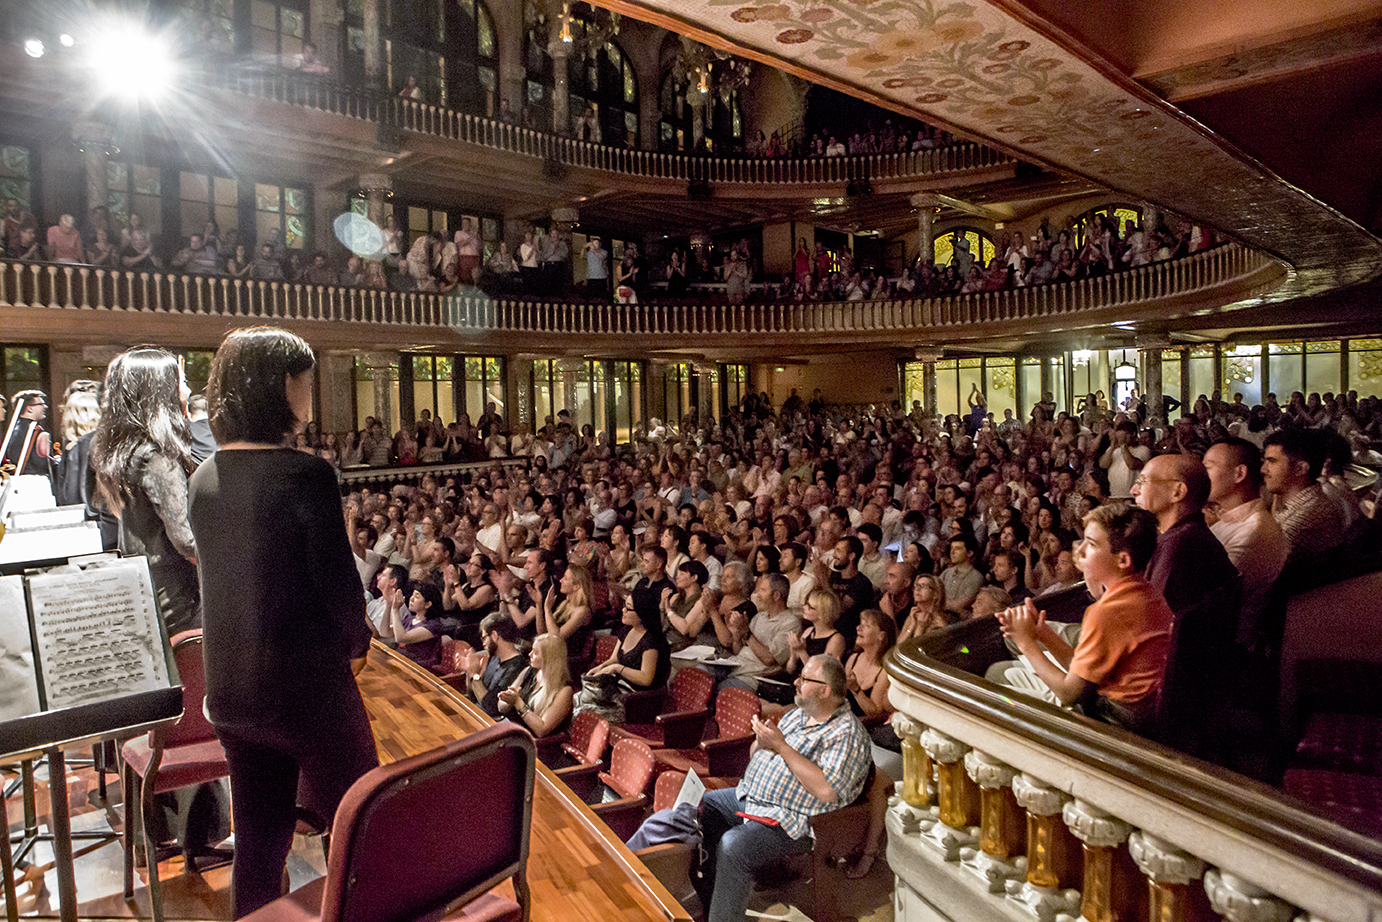 Orchestra recieving applause from full audience in the Palau in Barcelona